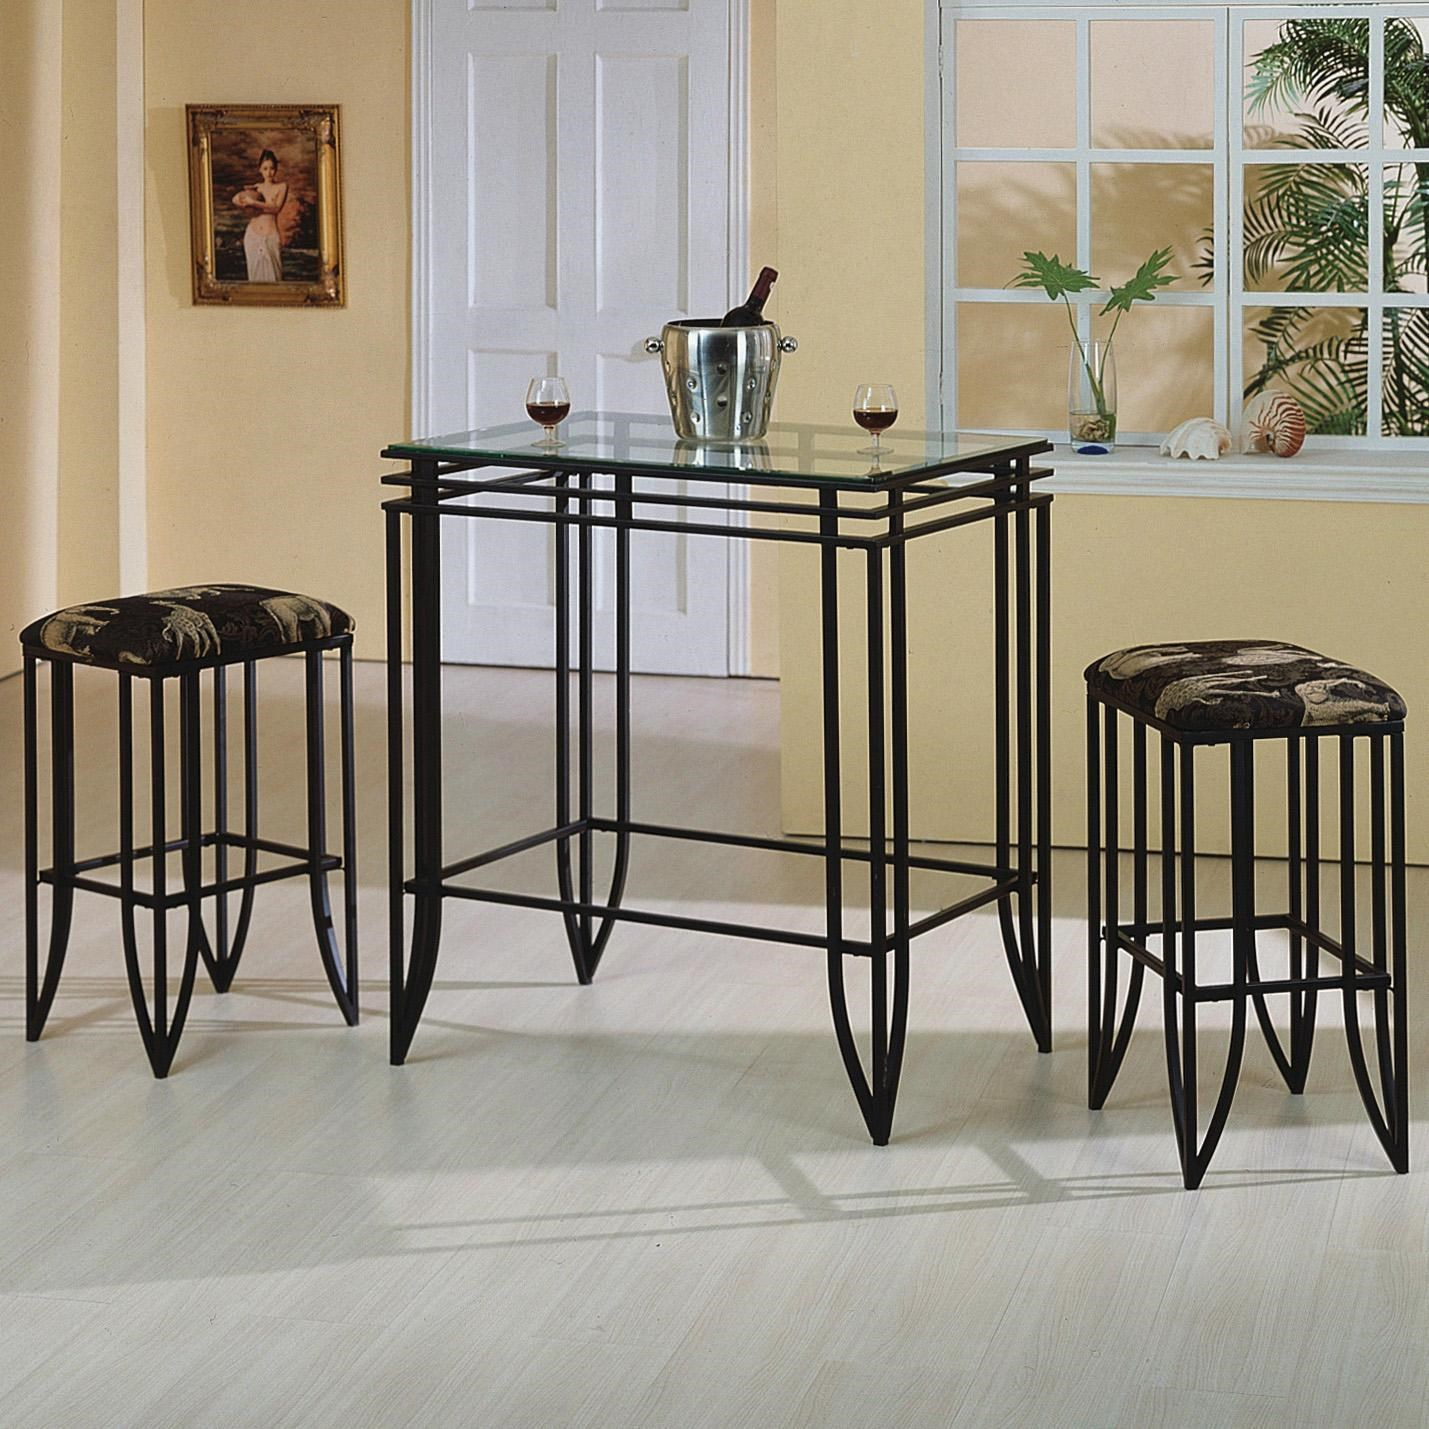 Matrix 3 Piece Glass Top Pub Table and Chairs Set by Crown Mark  sc 1 st  Dunk u0026 Bright Furniture & Crown Mark Matrix 1177SET-AN 3 Piece Glass Top Pub Table and Chairs ...